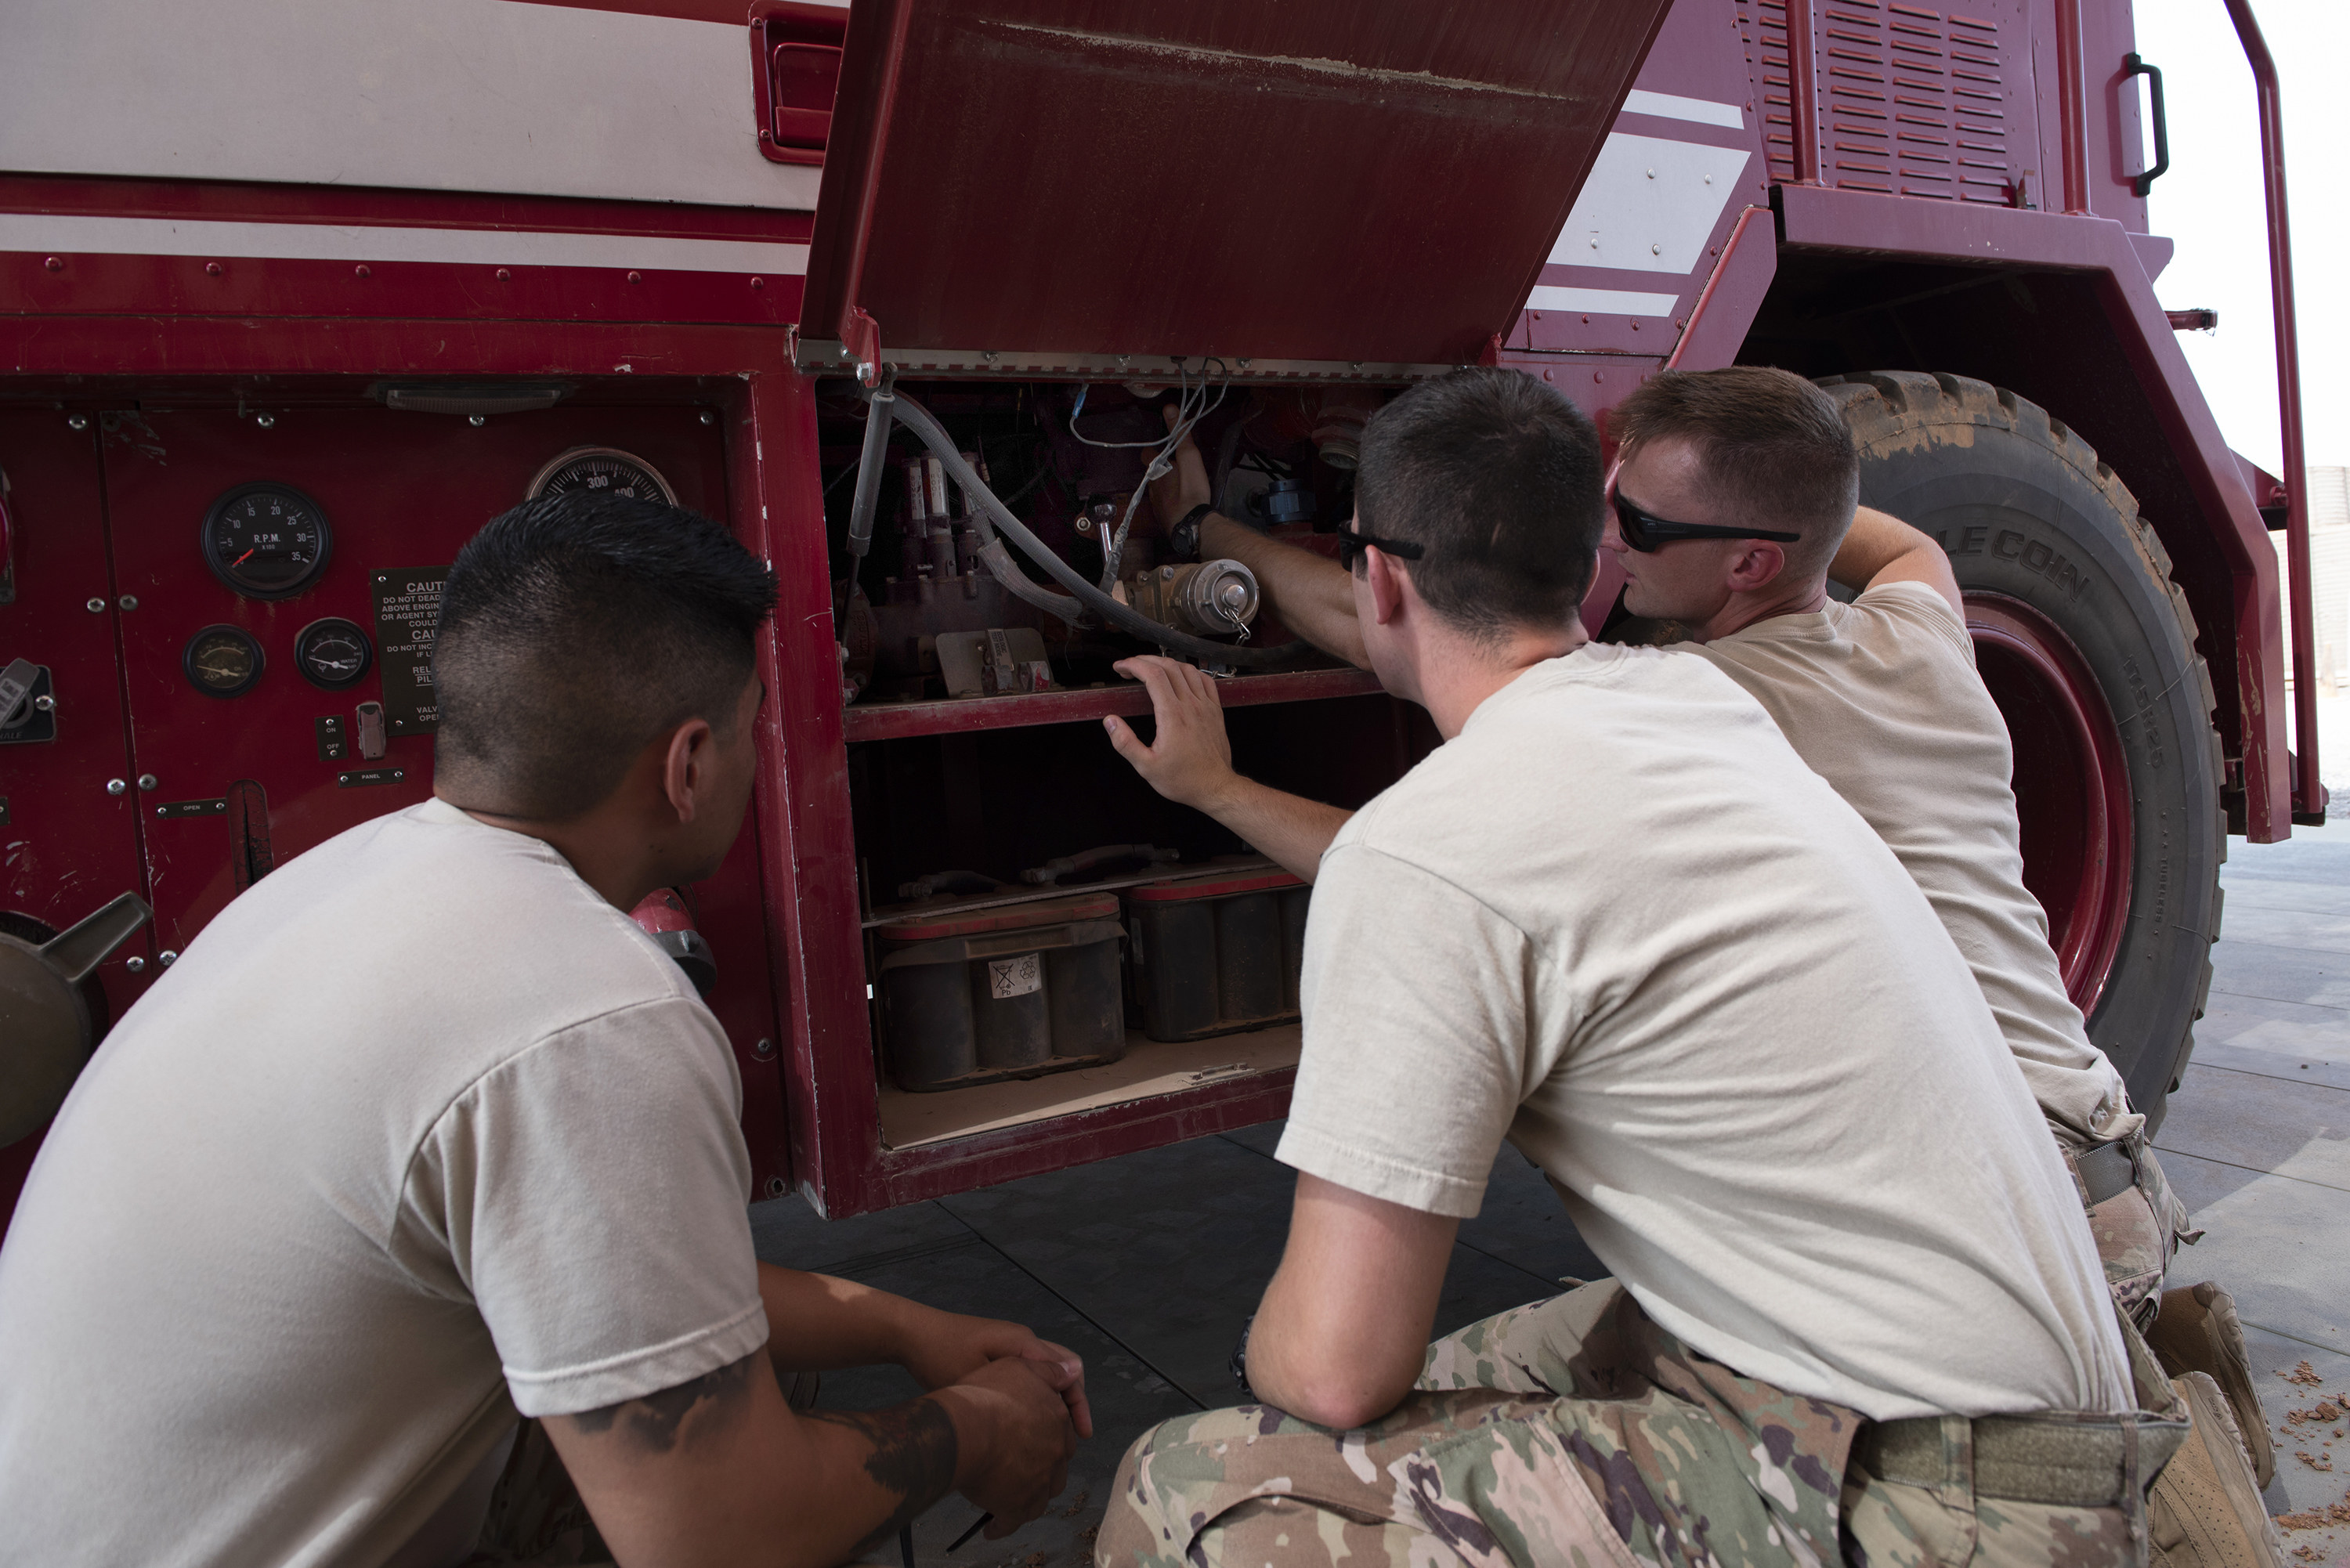 U.S. Air Force firefighters with the 449th Air Expeditionary Group and Combined Joint Task Force Horn of Africa conduct proficiency training on a P-19B fire truck, outside Djibouti City, Djibouti, Aug. 20, 2018. The Airmen continually perform scenario based training tasks in order to maintain their skills. (U.S. Air National Guard photo by Master Sgt. Sarah Mattison)